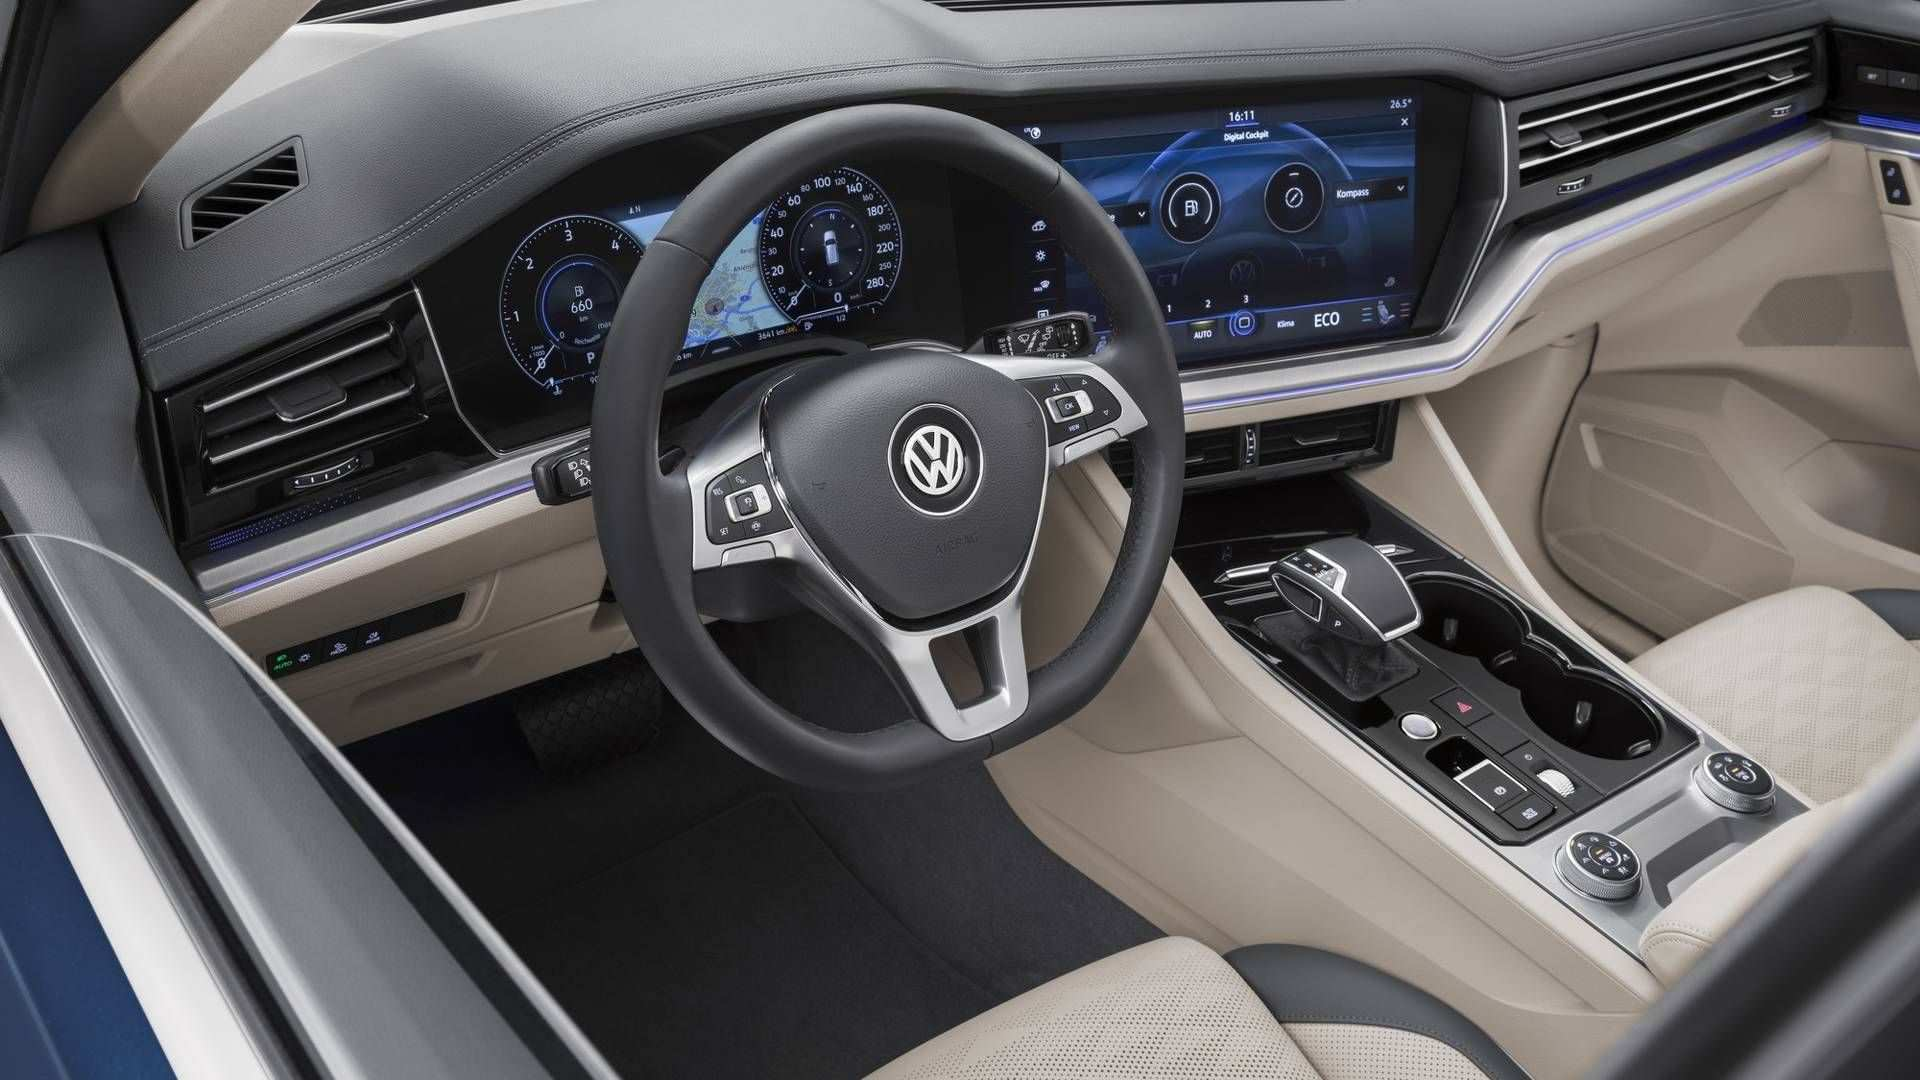 74 New Vw Touareg 2019 Interior Specs